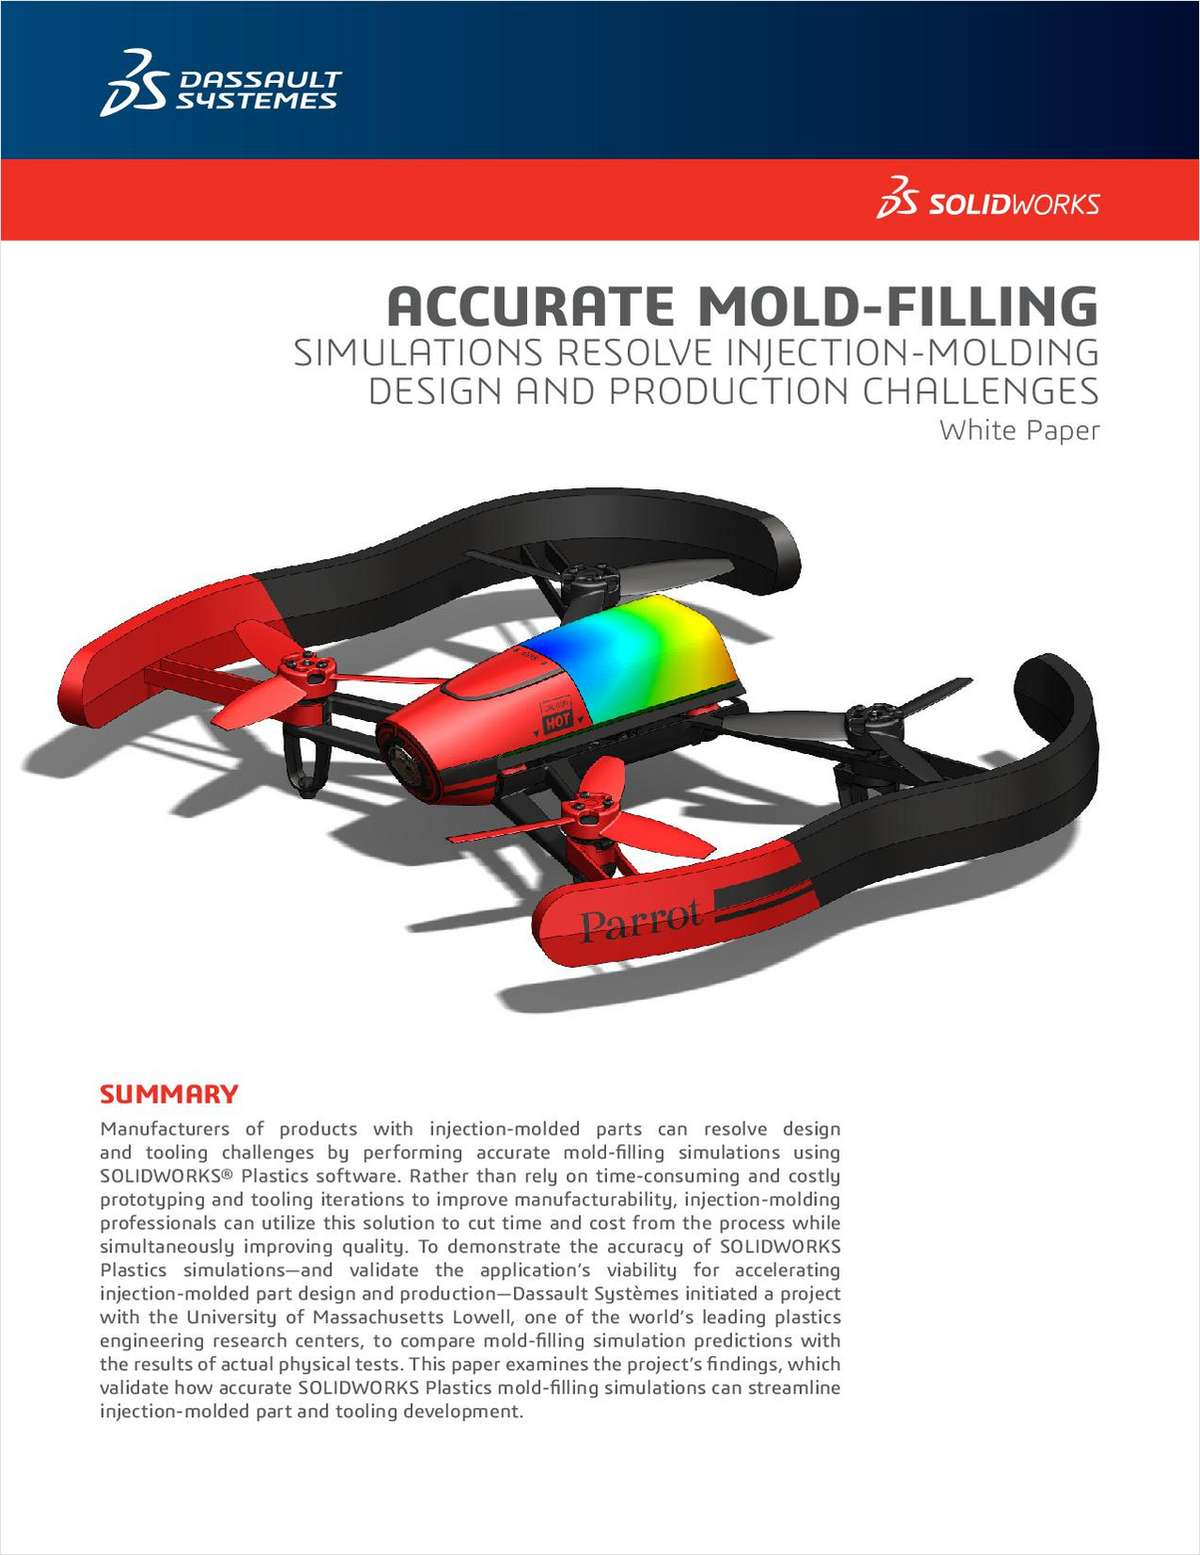 How Simulation Improves Injection Molding Challenges